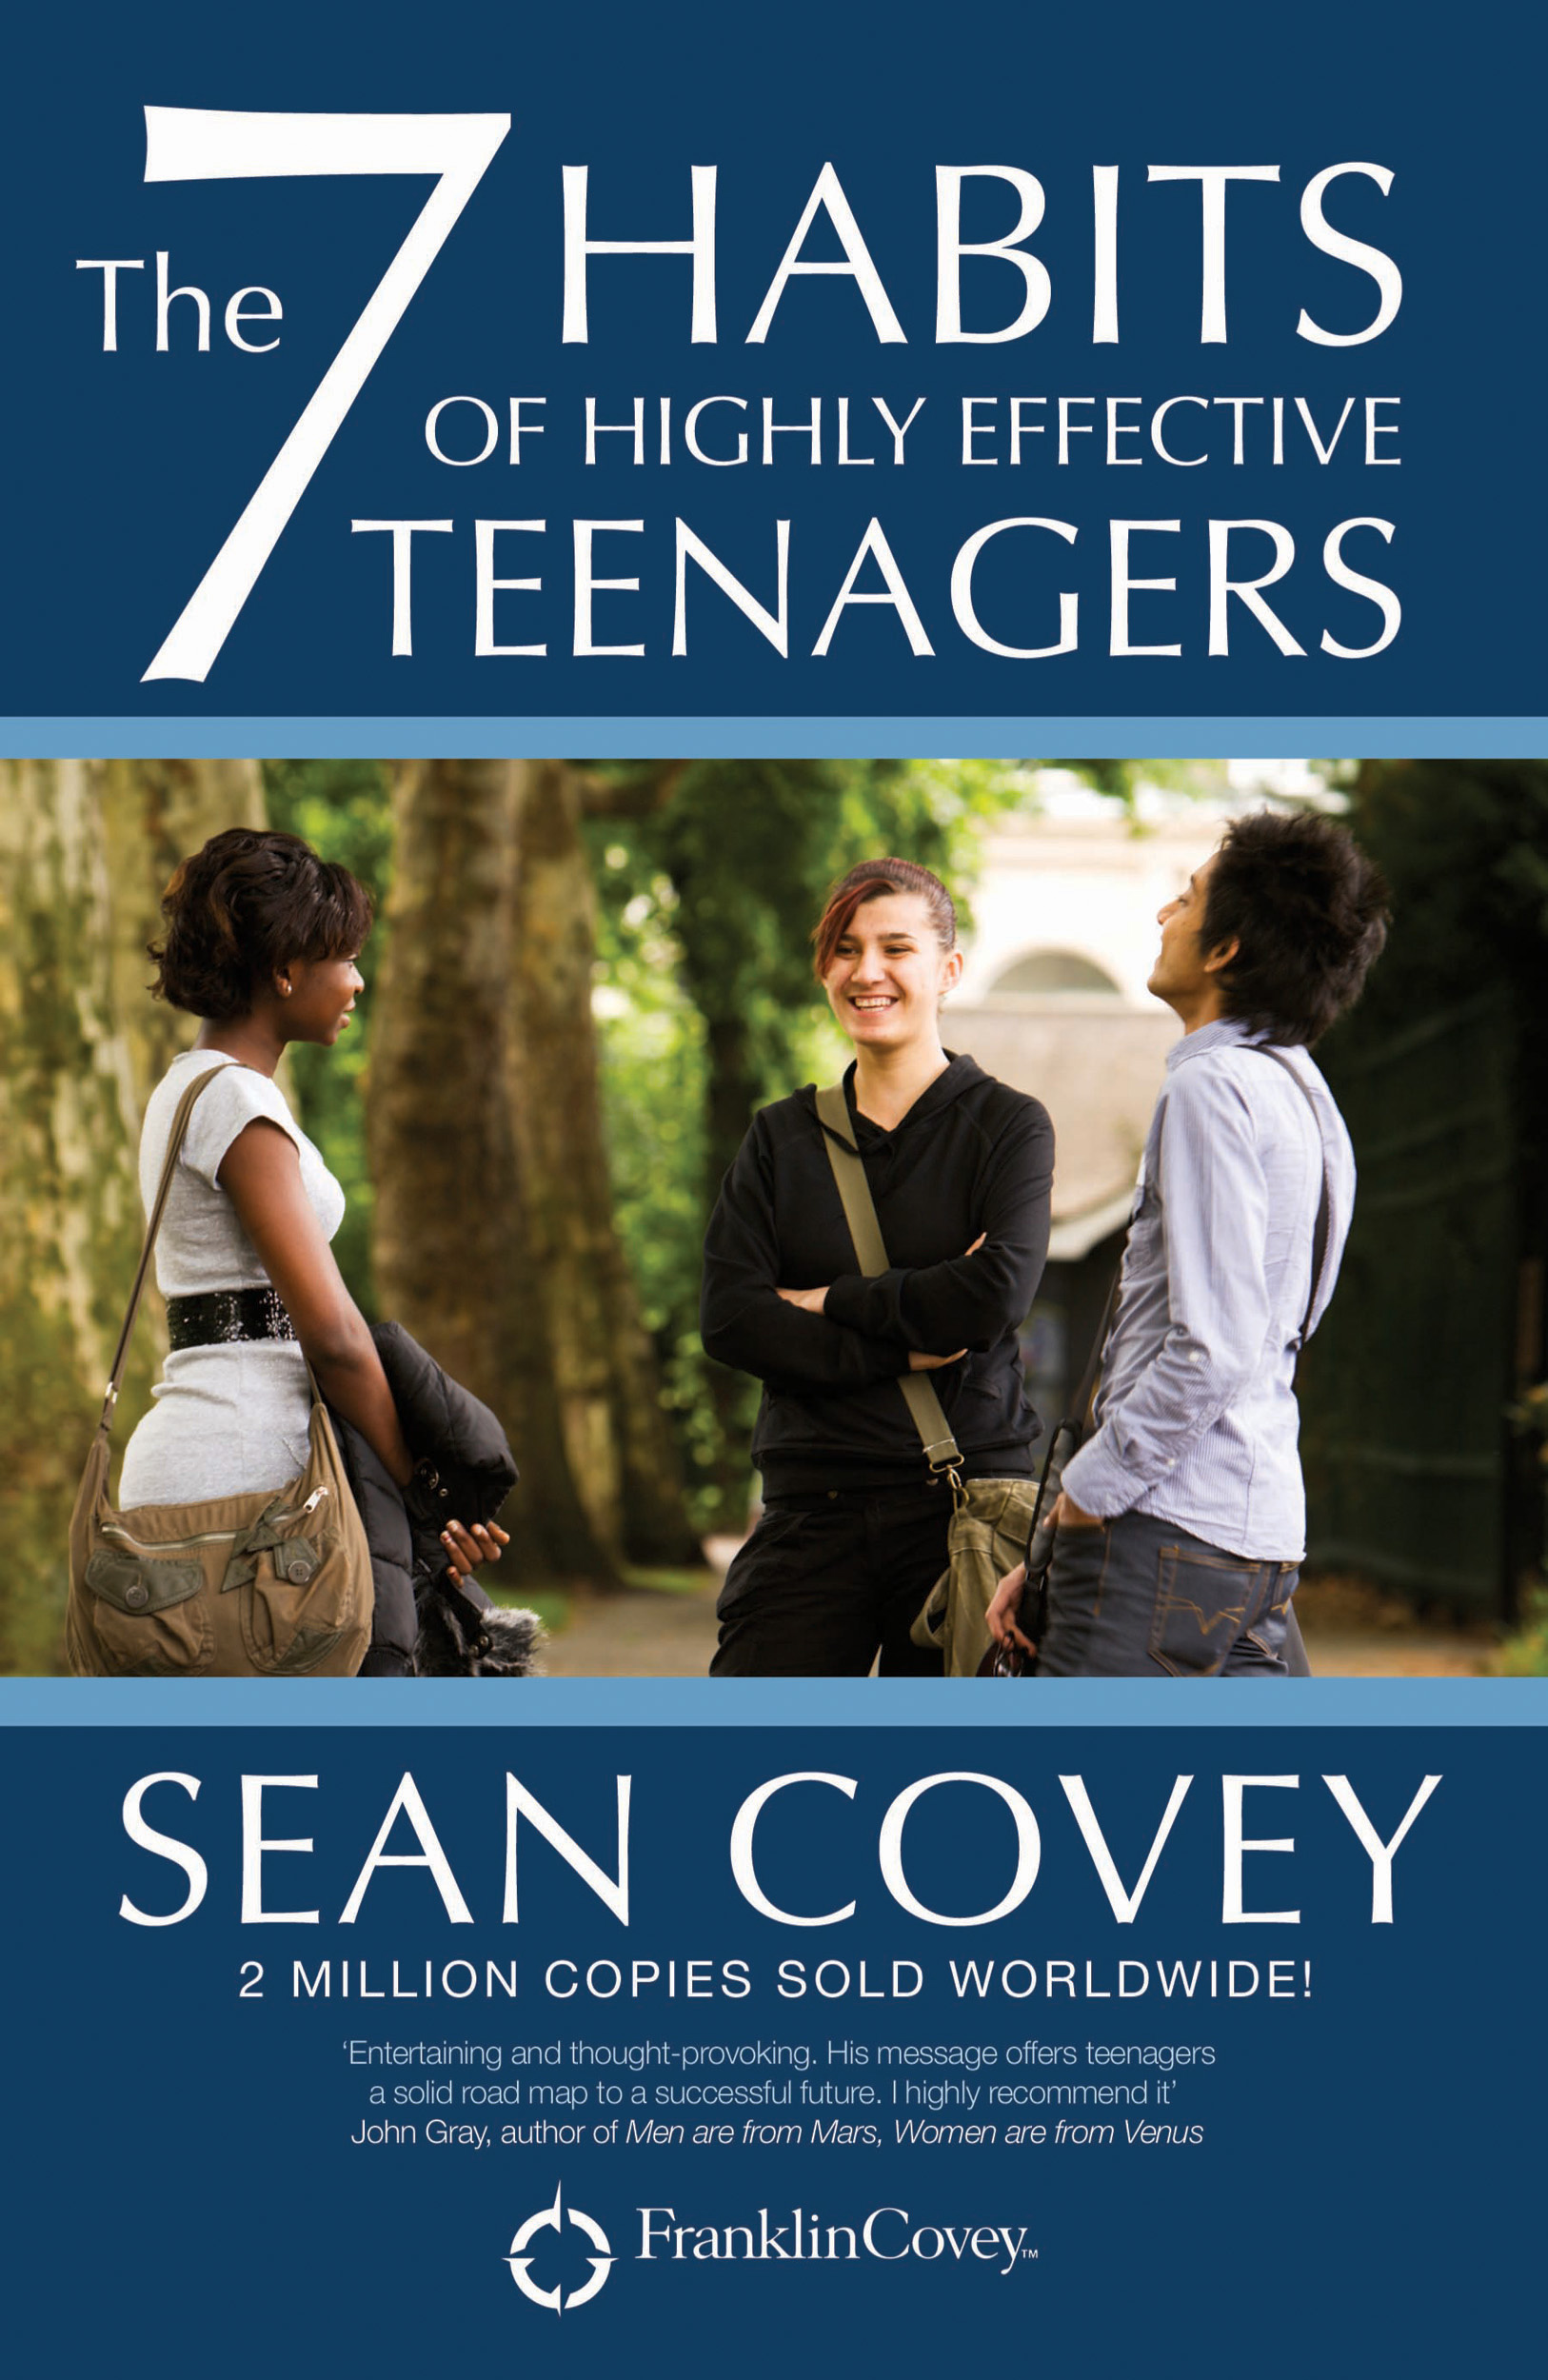 Remarkable, covey effective habit highly sean teen charming answer